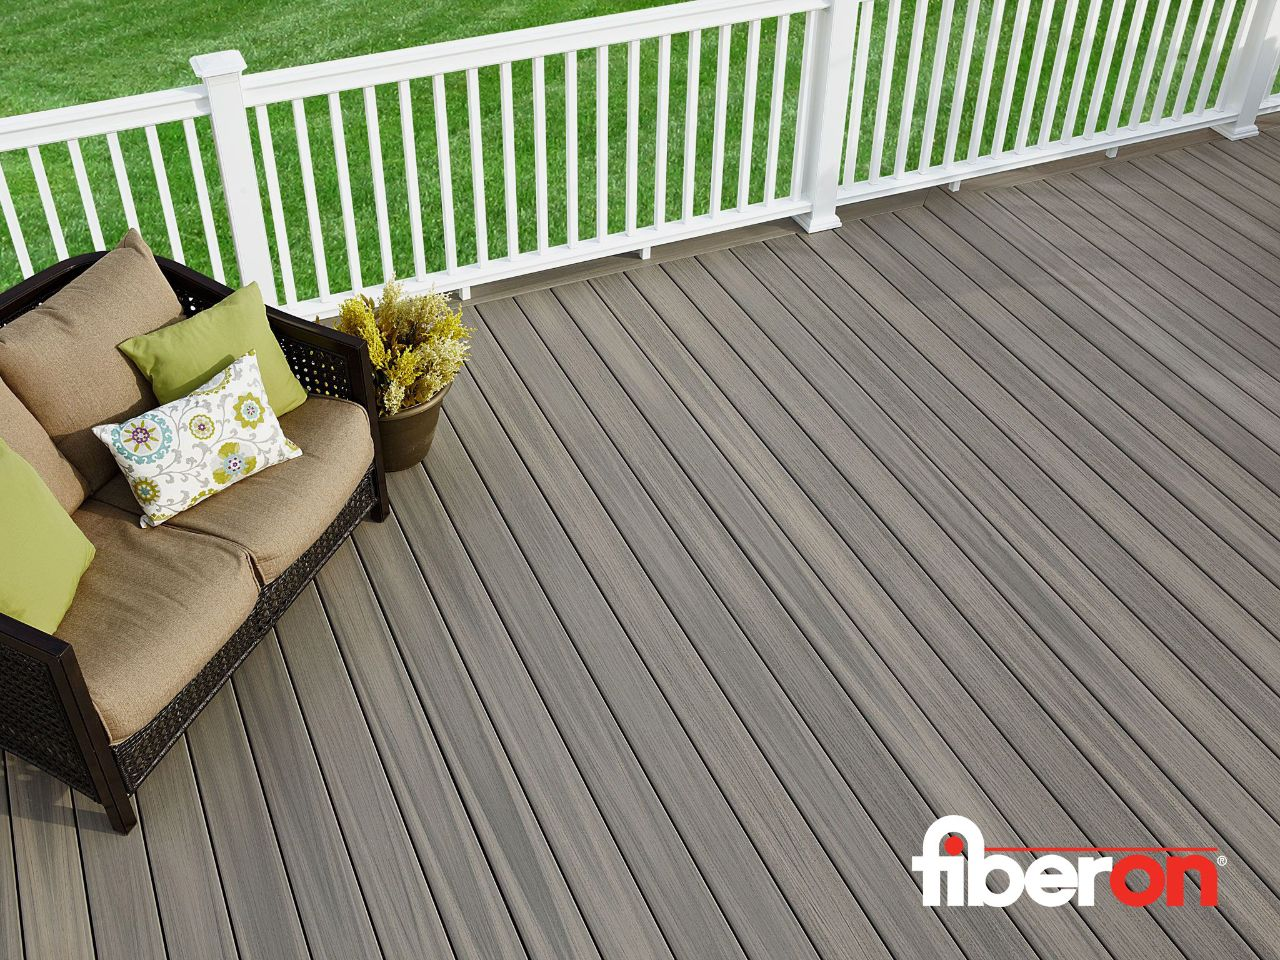 Silverthorne decking company deck contractor